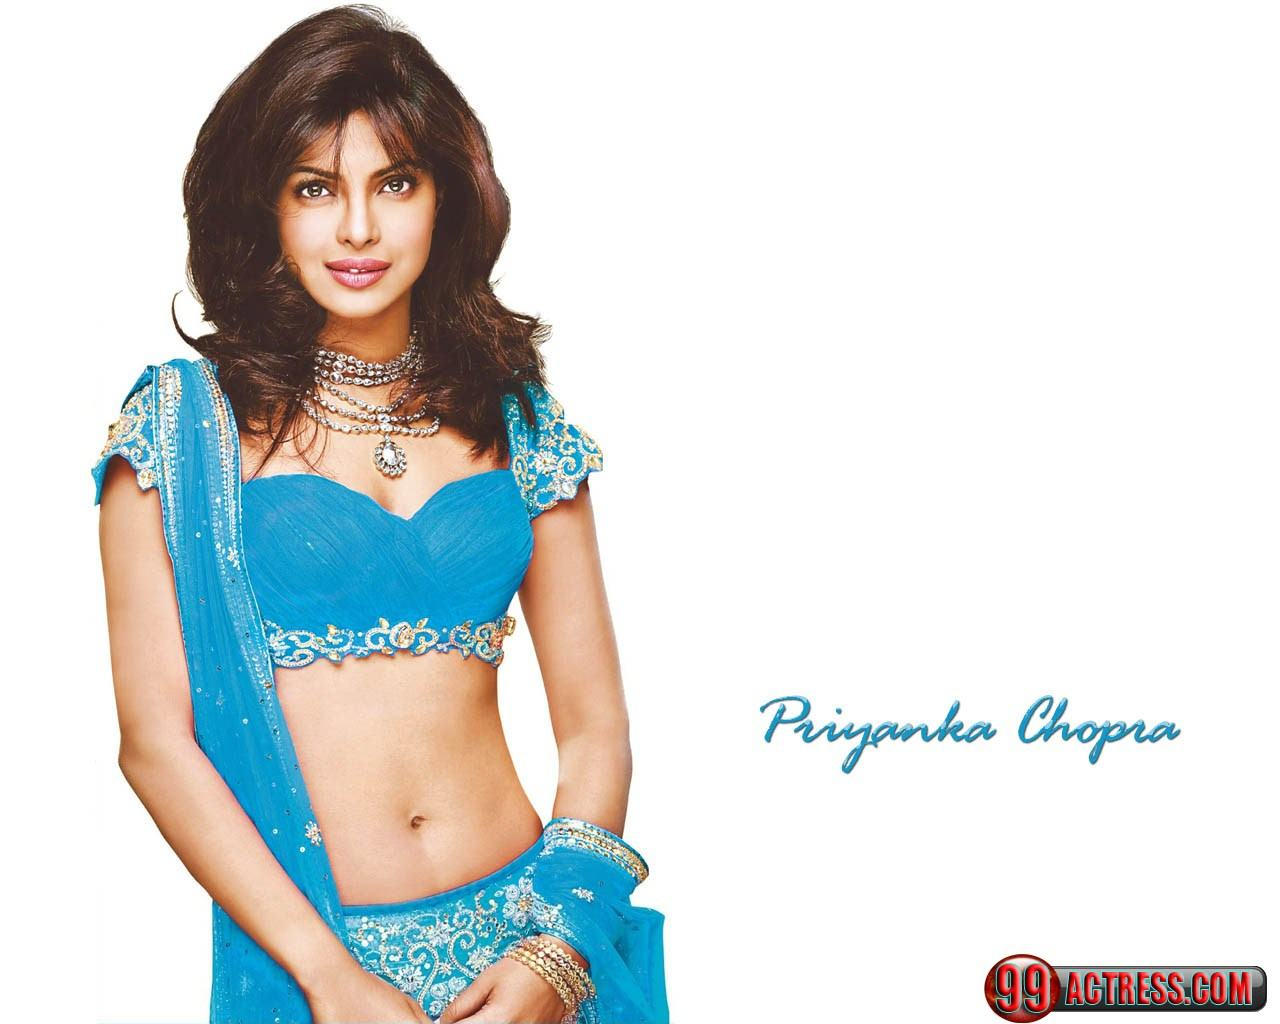 Download Free Wallpapers Backgrounds - Priyanka Chopra wallpapers